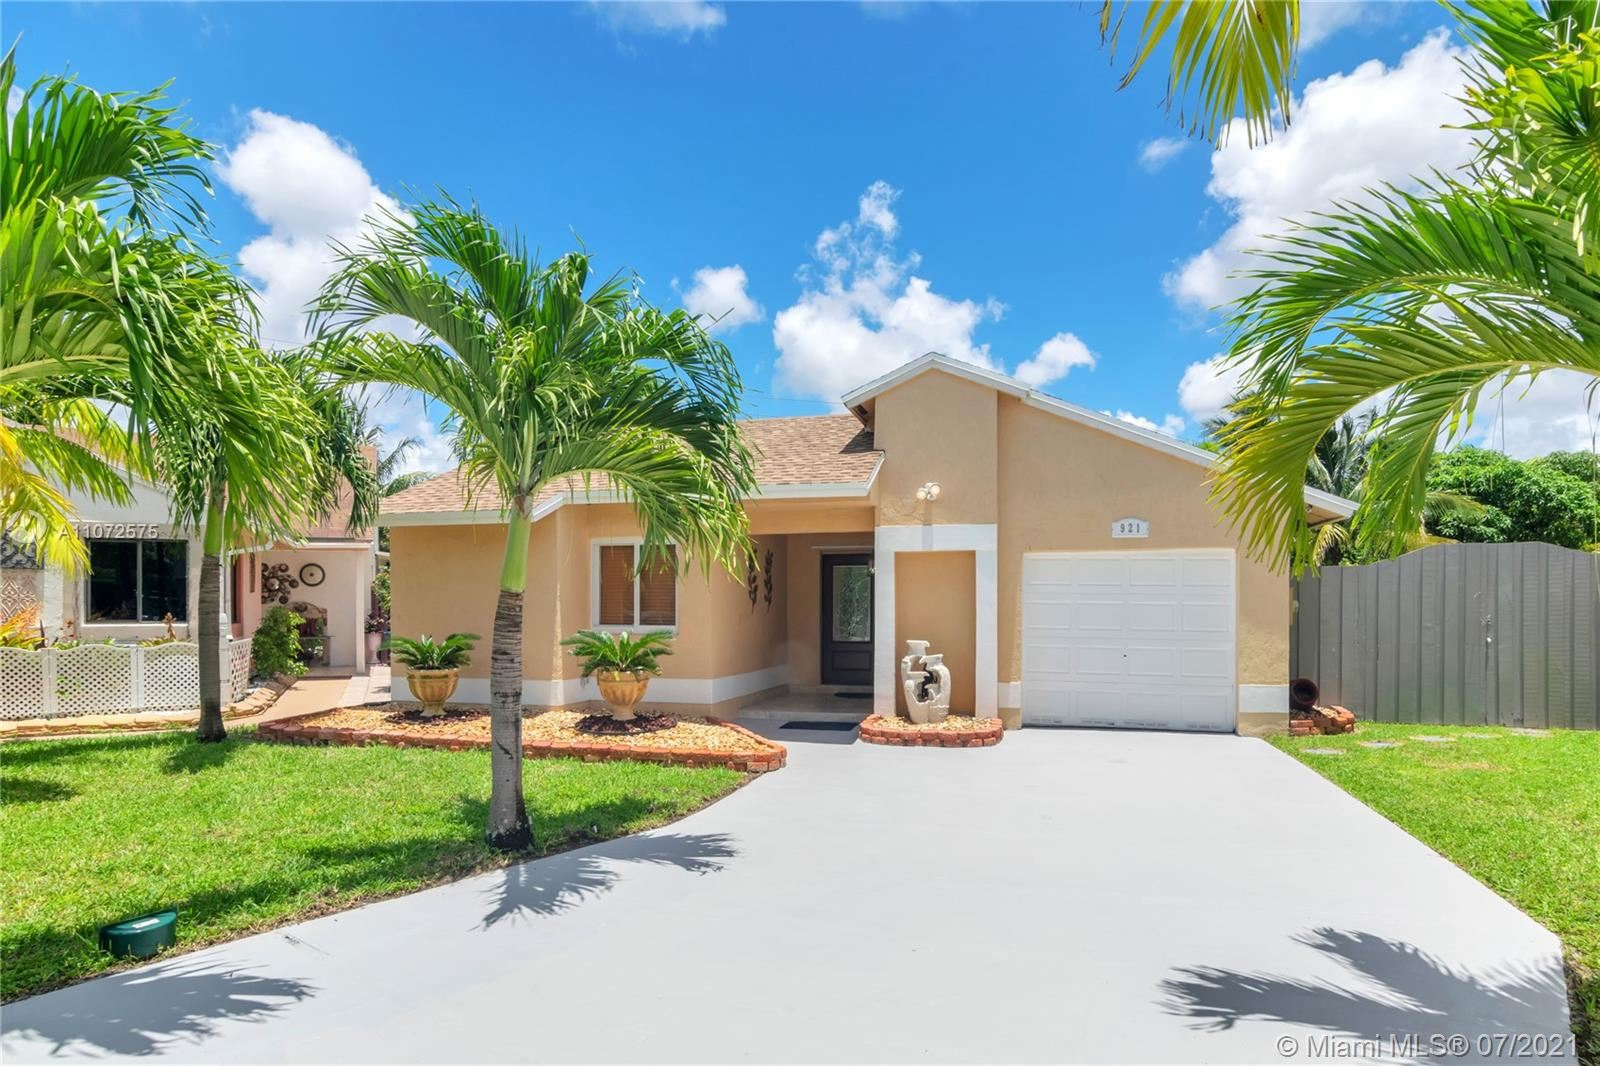 Photo of 921 SW 112th Ave, Pembroke Pines, FL 33025 (MLS # A11072575)